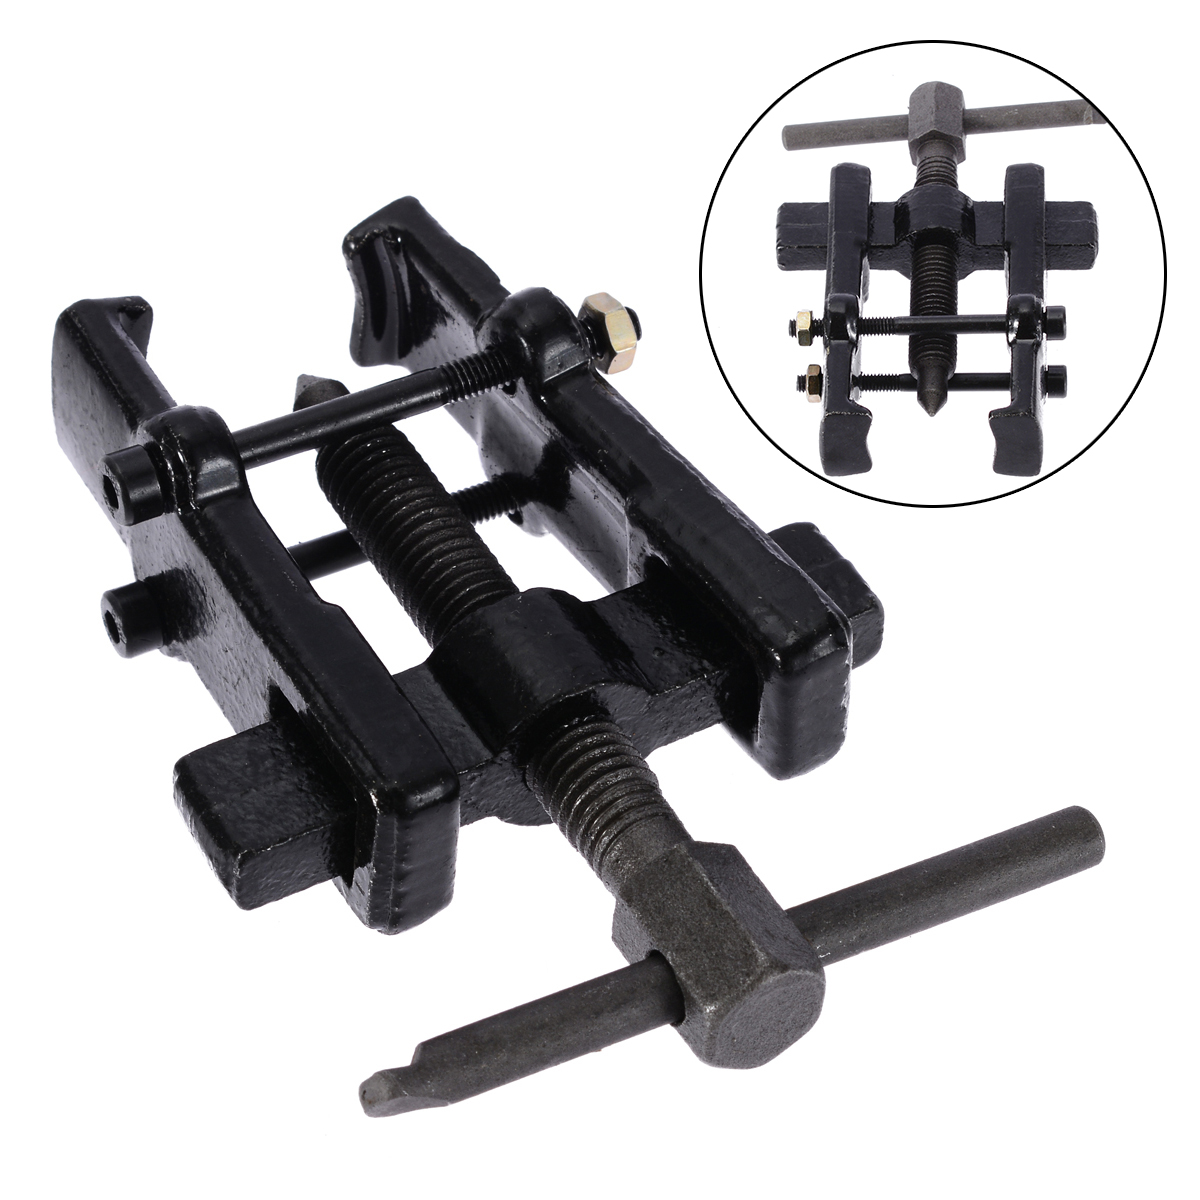 Hand & Power Tool Accessories Back To Search Resultstools 1pc Two Jaw Gear Pulley Bearing Puller 2 4 6 Small Leg Large Mechanics Black Repairing Car Tools Kits Hand Tool Sets